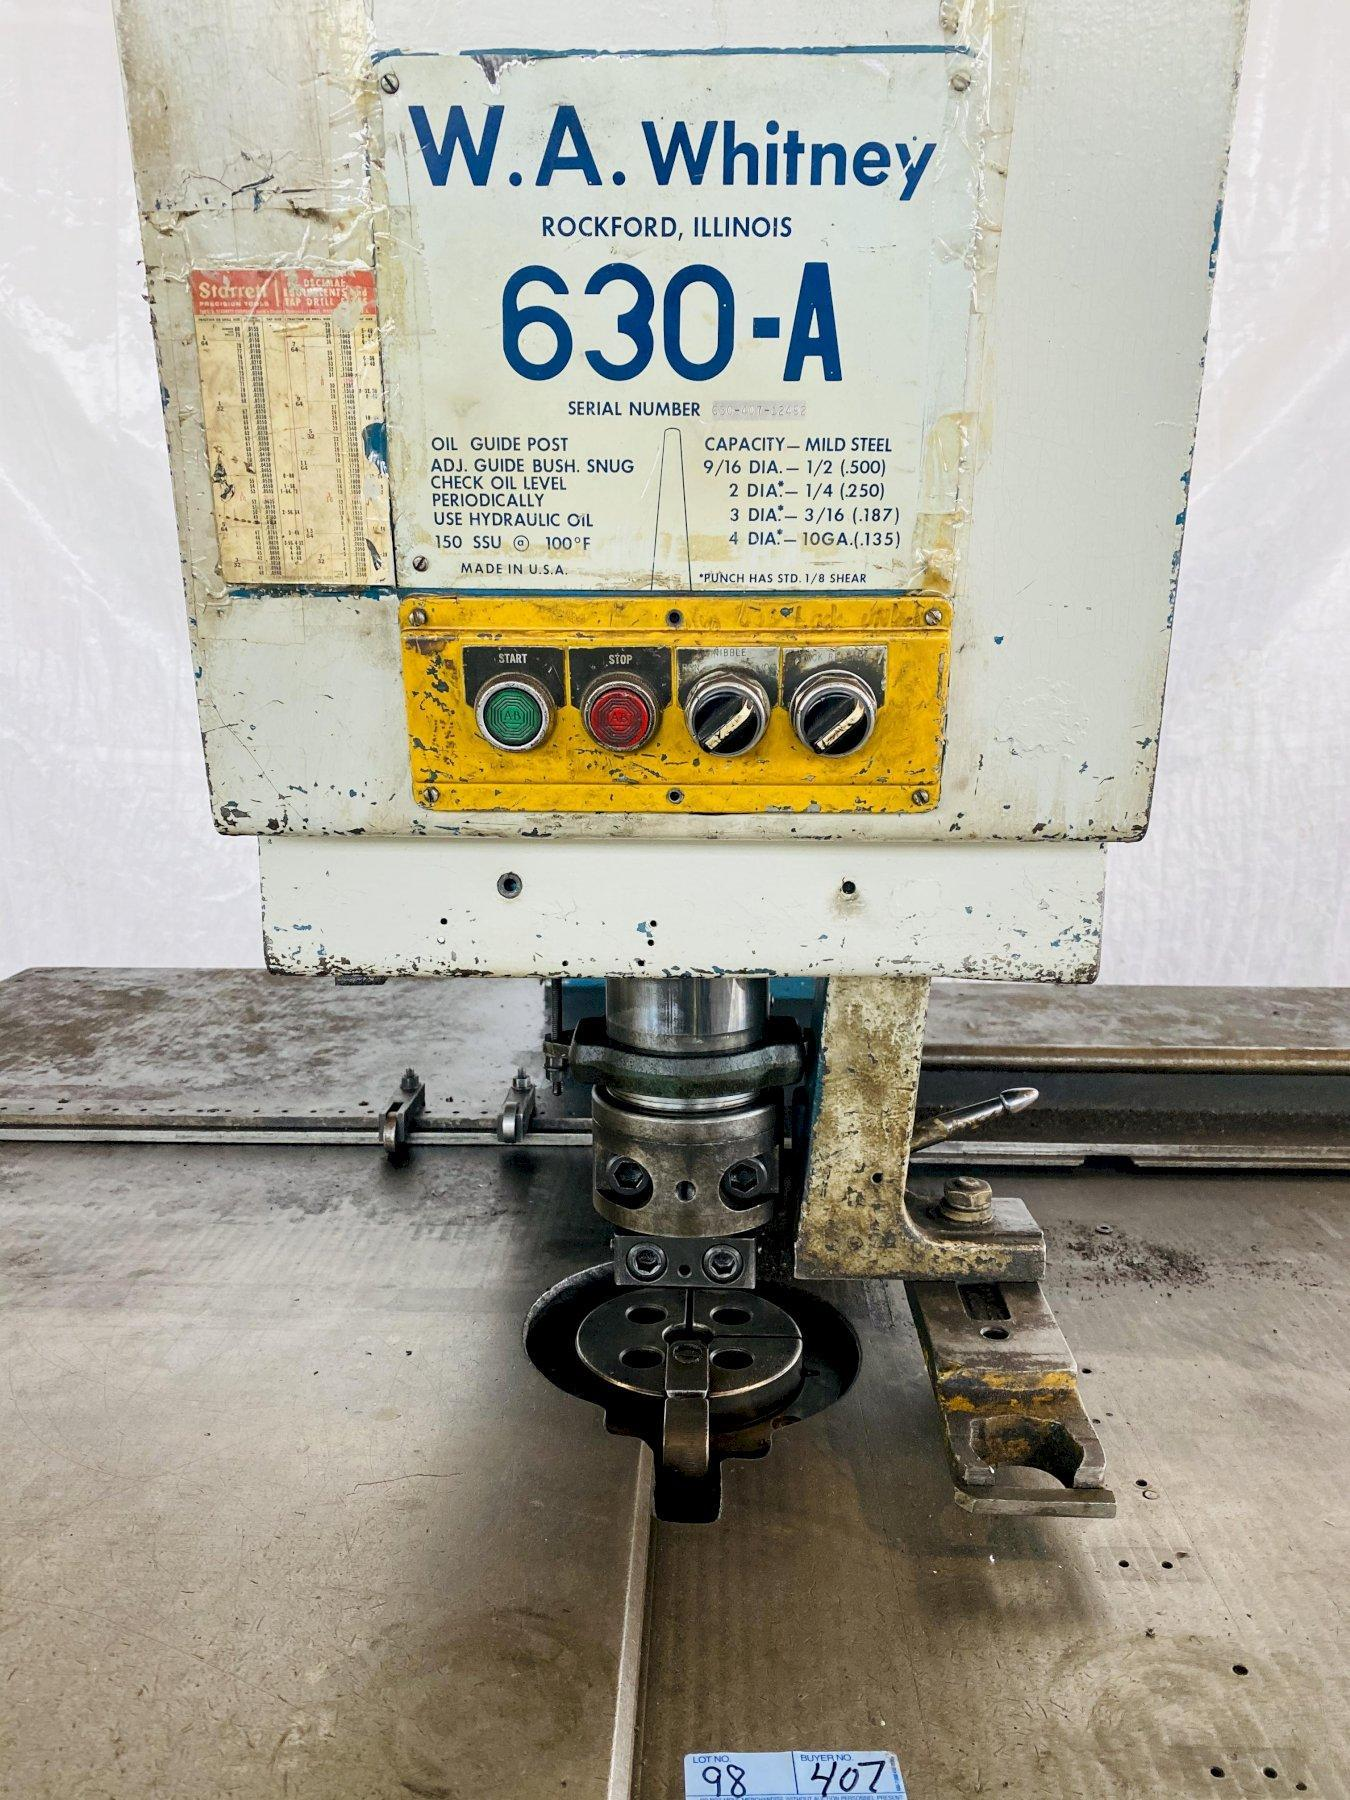 W.A. WHITNEY 630A 30 TON HYDRAULIC SINGLE STATION DUPLICATOR/FABRICATOR PUNCH. STOCK # 0950520